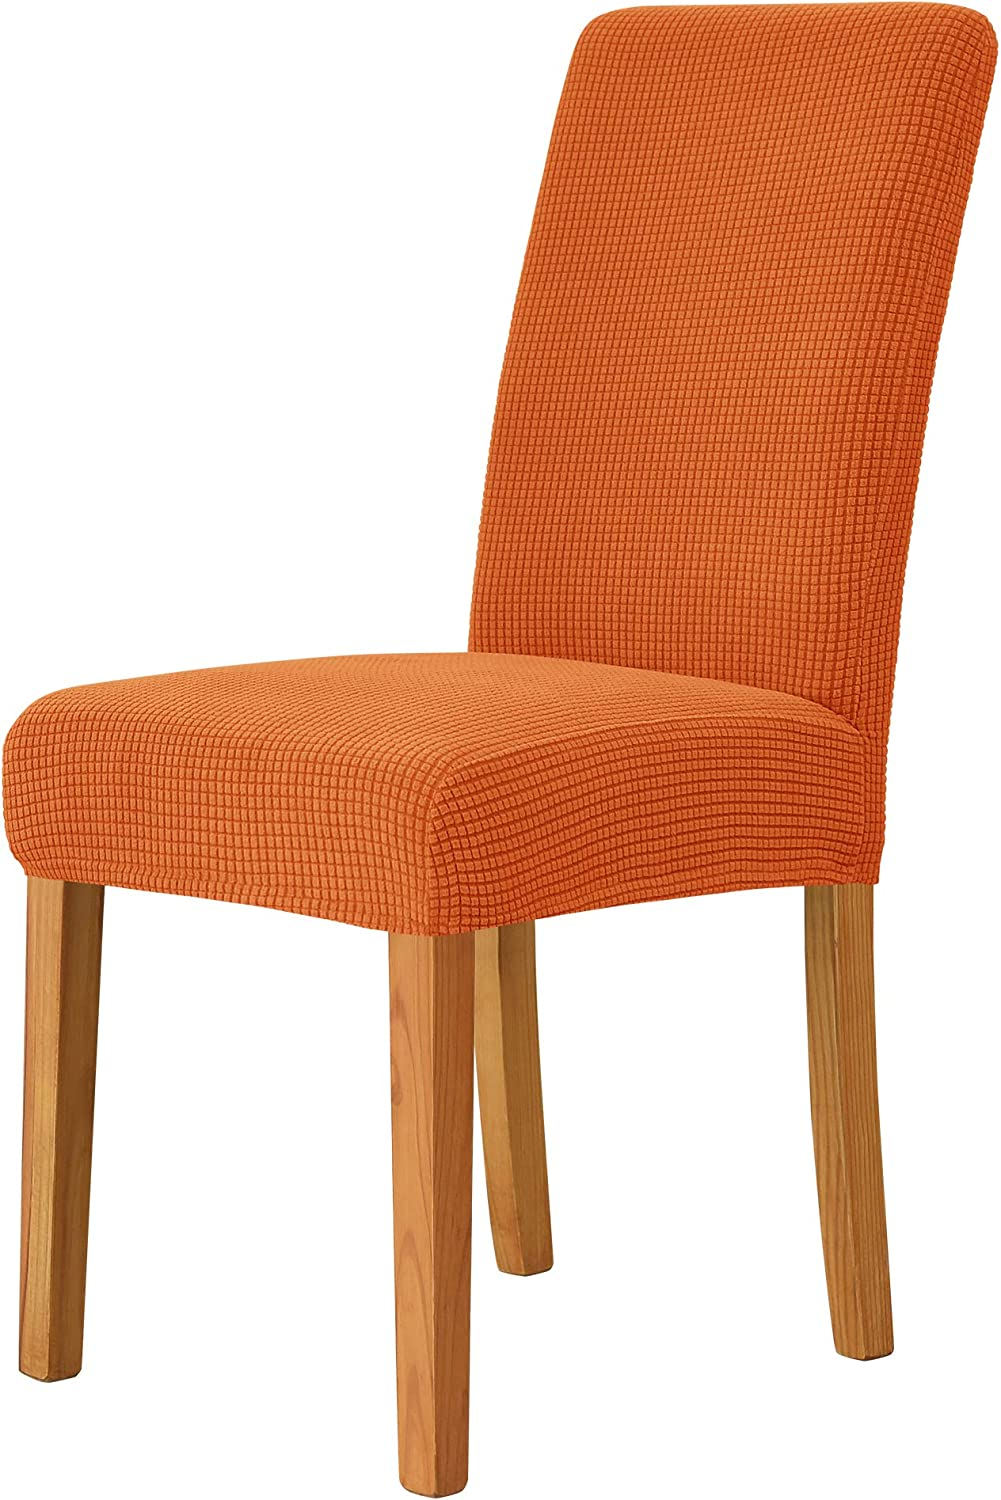 MILARAN Dining Chair Cover, Soft Stretch Jacquard Chair Seat Slipcover for Dining Room, Kitchen, Washable Removable Parson Chair Protector for Home Décor, Banquet, Ceremony—Set of 4, Deep Orange